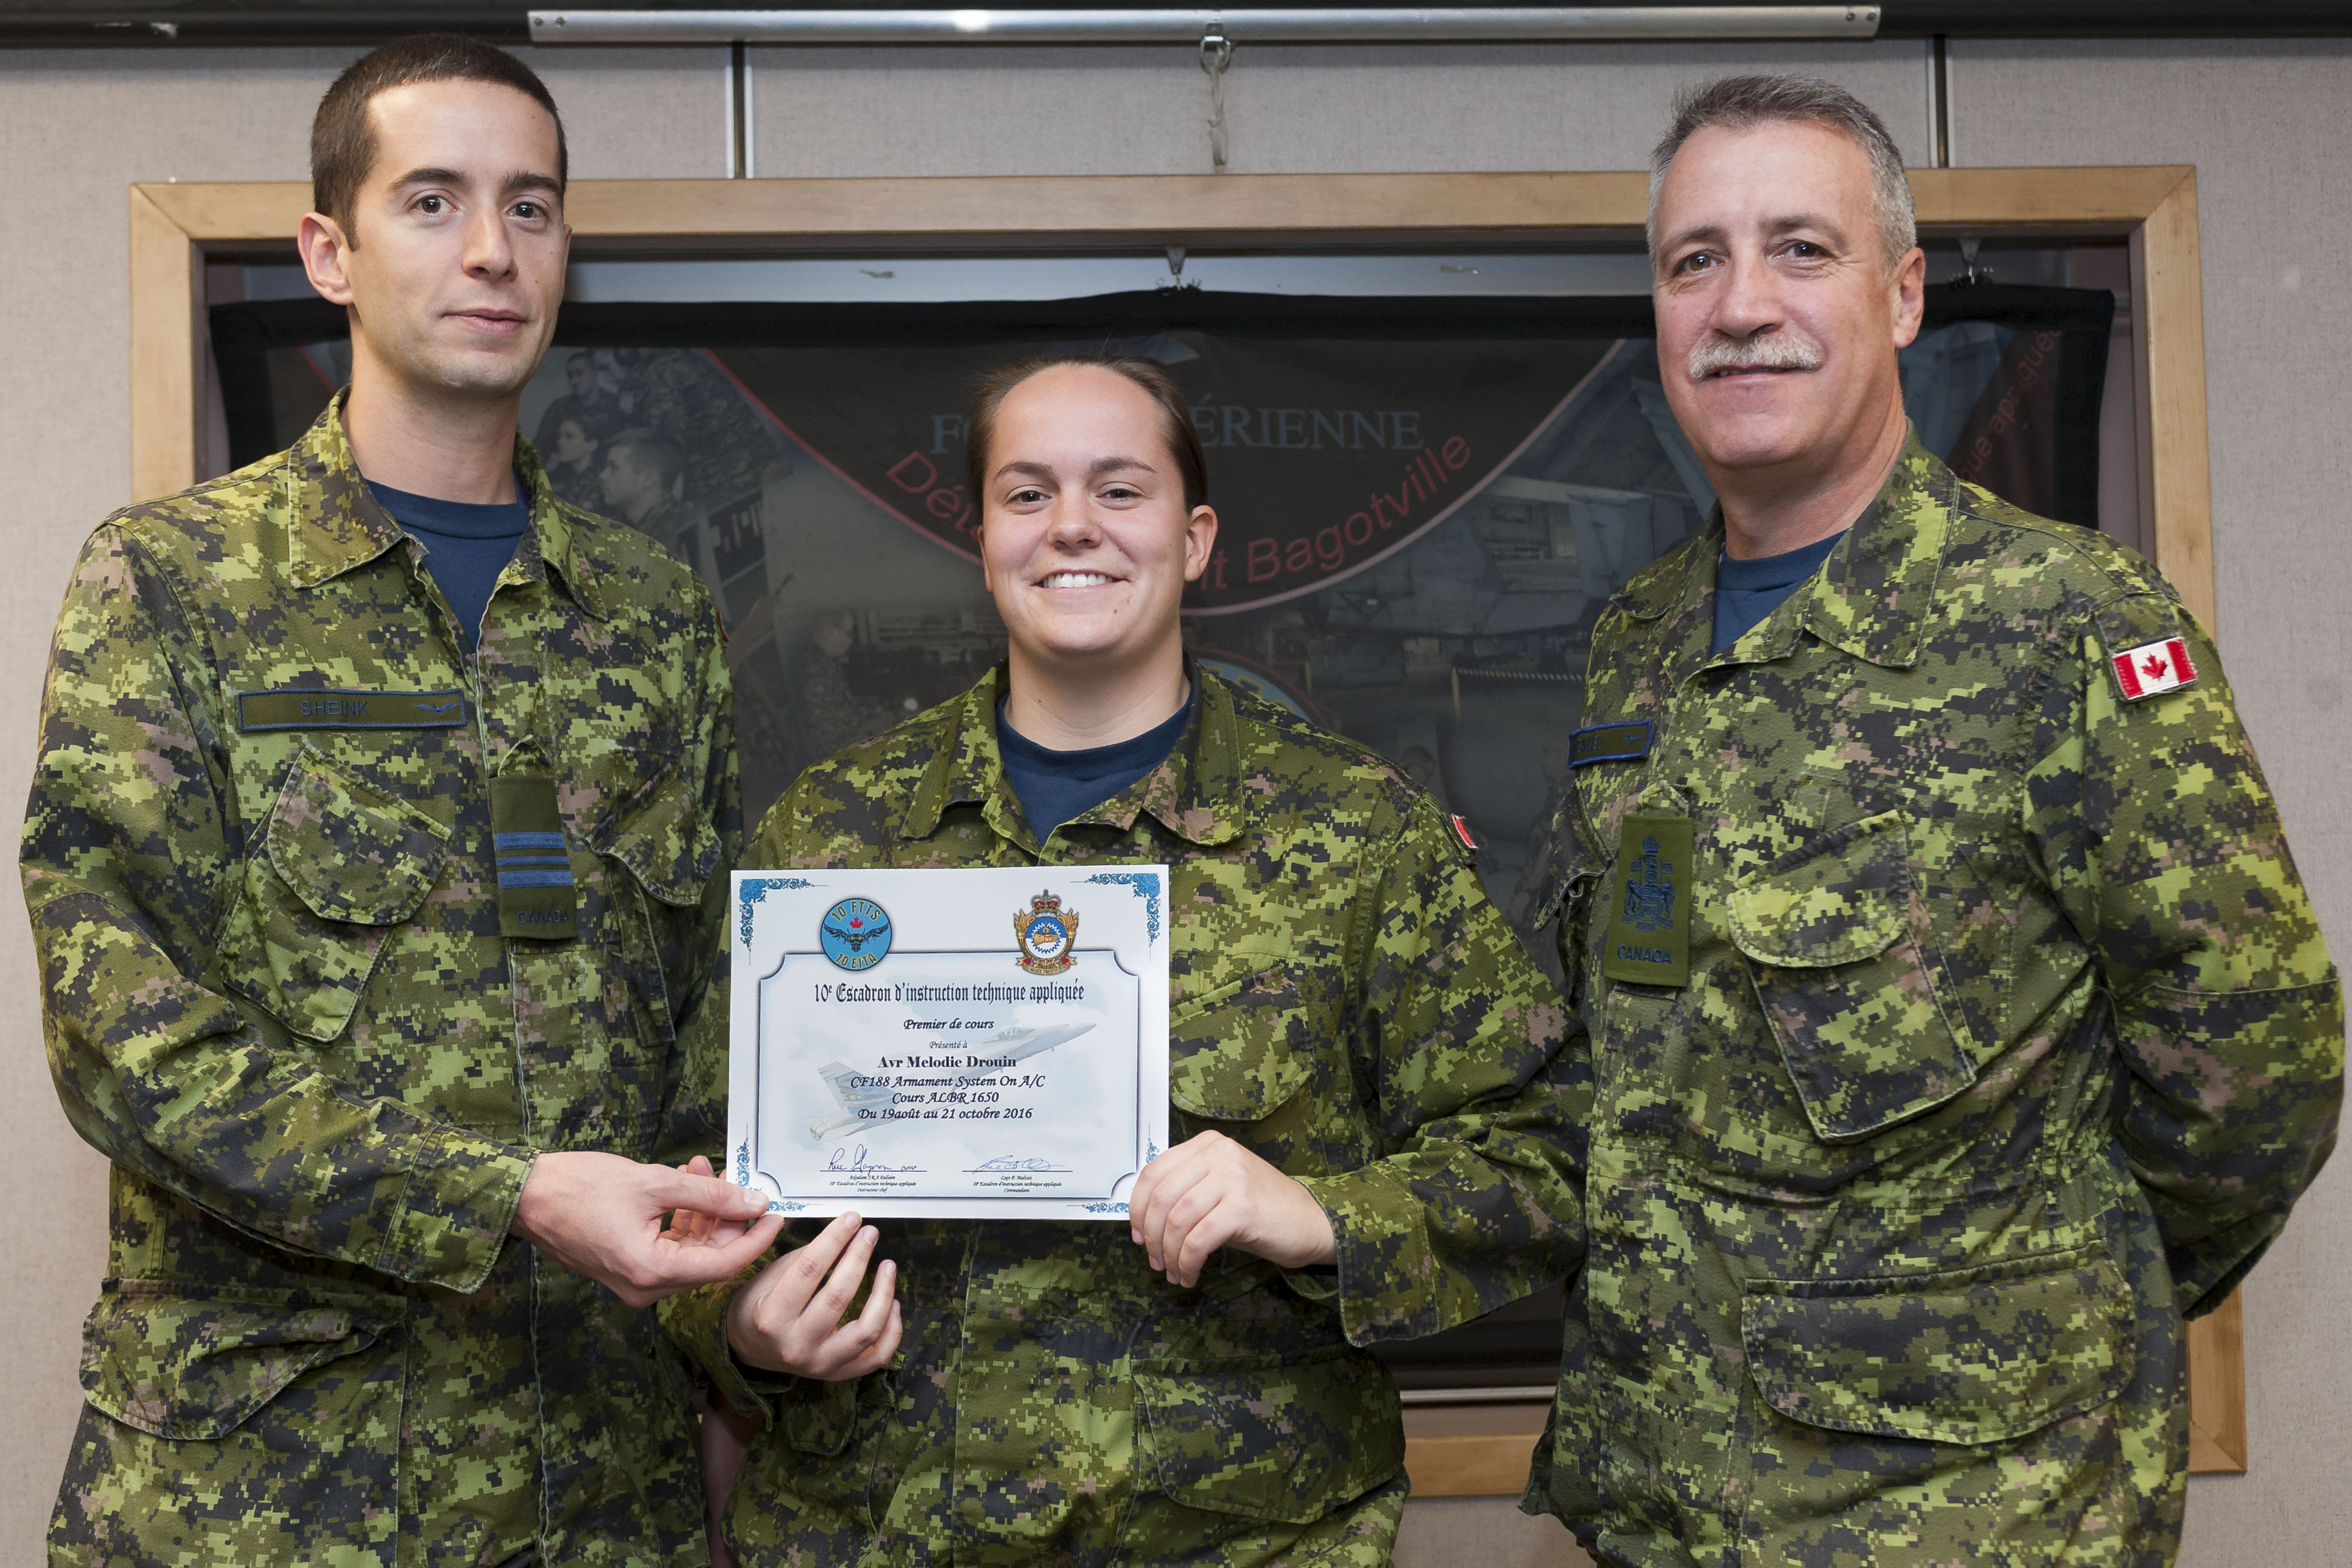 Aviator Mélodie Drouin receives her certificate of graduation from the CF-18 weapons technician course from Major Christian Sheink (left), maintenance officer at 433 Tactical Fighter Squadron at 3 Wing Bagotville, Quebec, and Chief Warrant Officer Simon Beaulieu, the squadron's chief warrant officer. PHOTO: Corporal Karine Chalifour, BN14-2016-0594-001